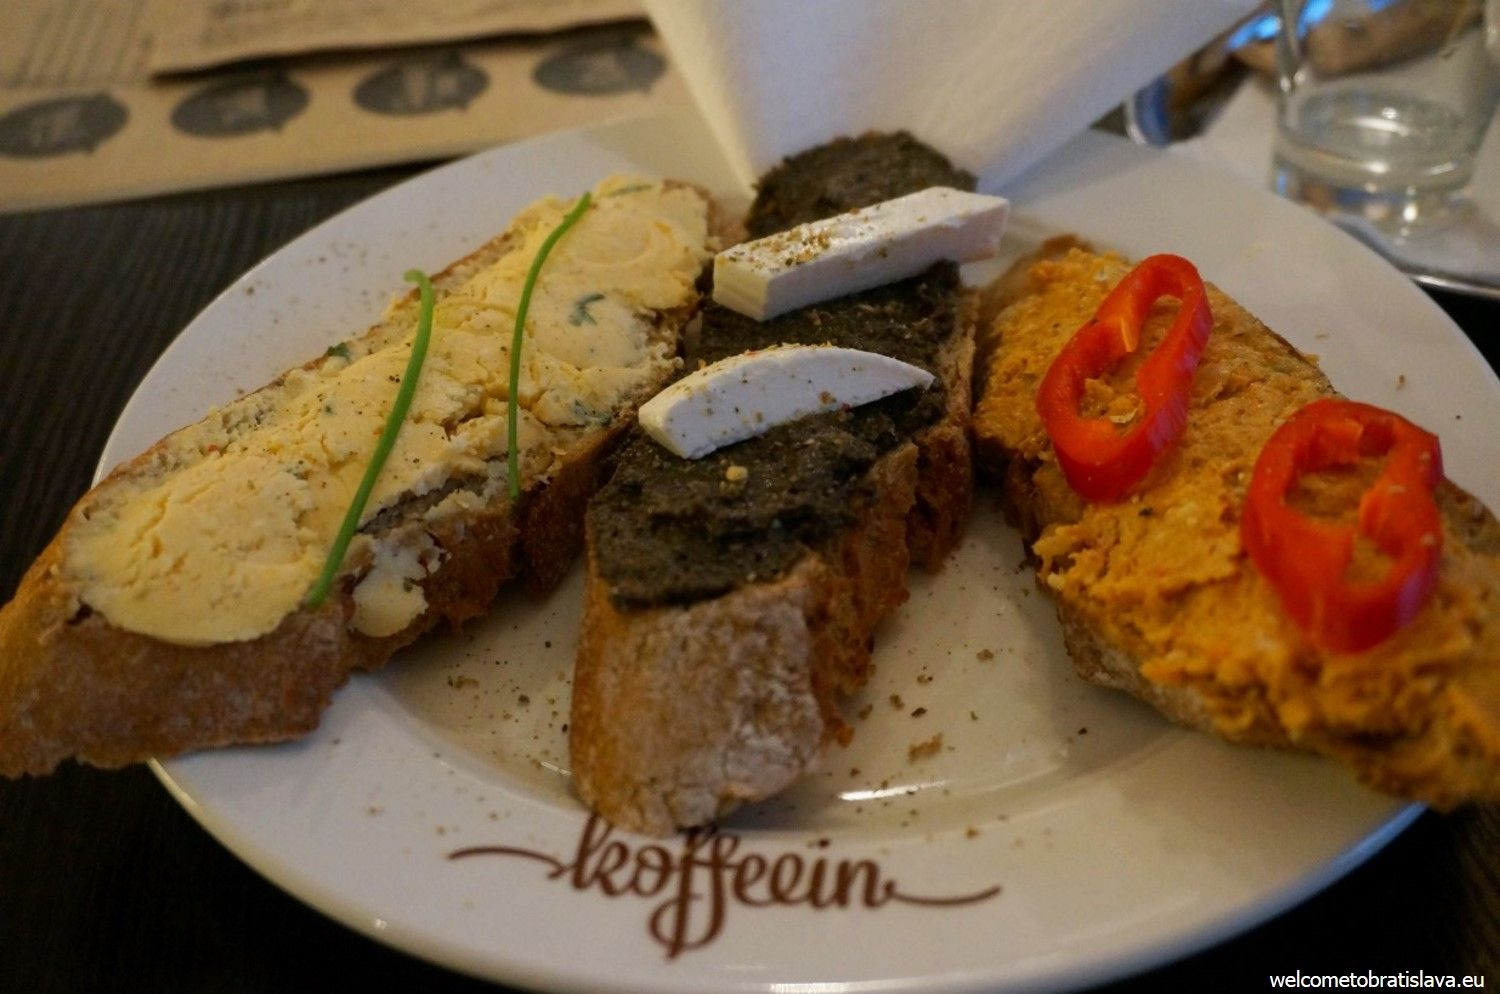 Fúz has some delicious home-made spreads on its menu